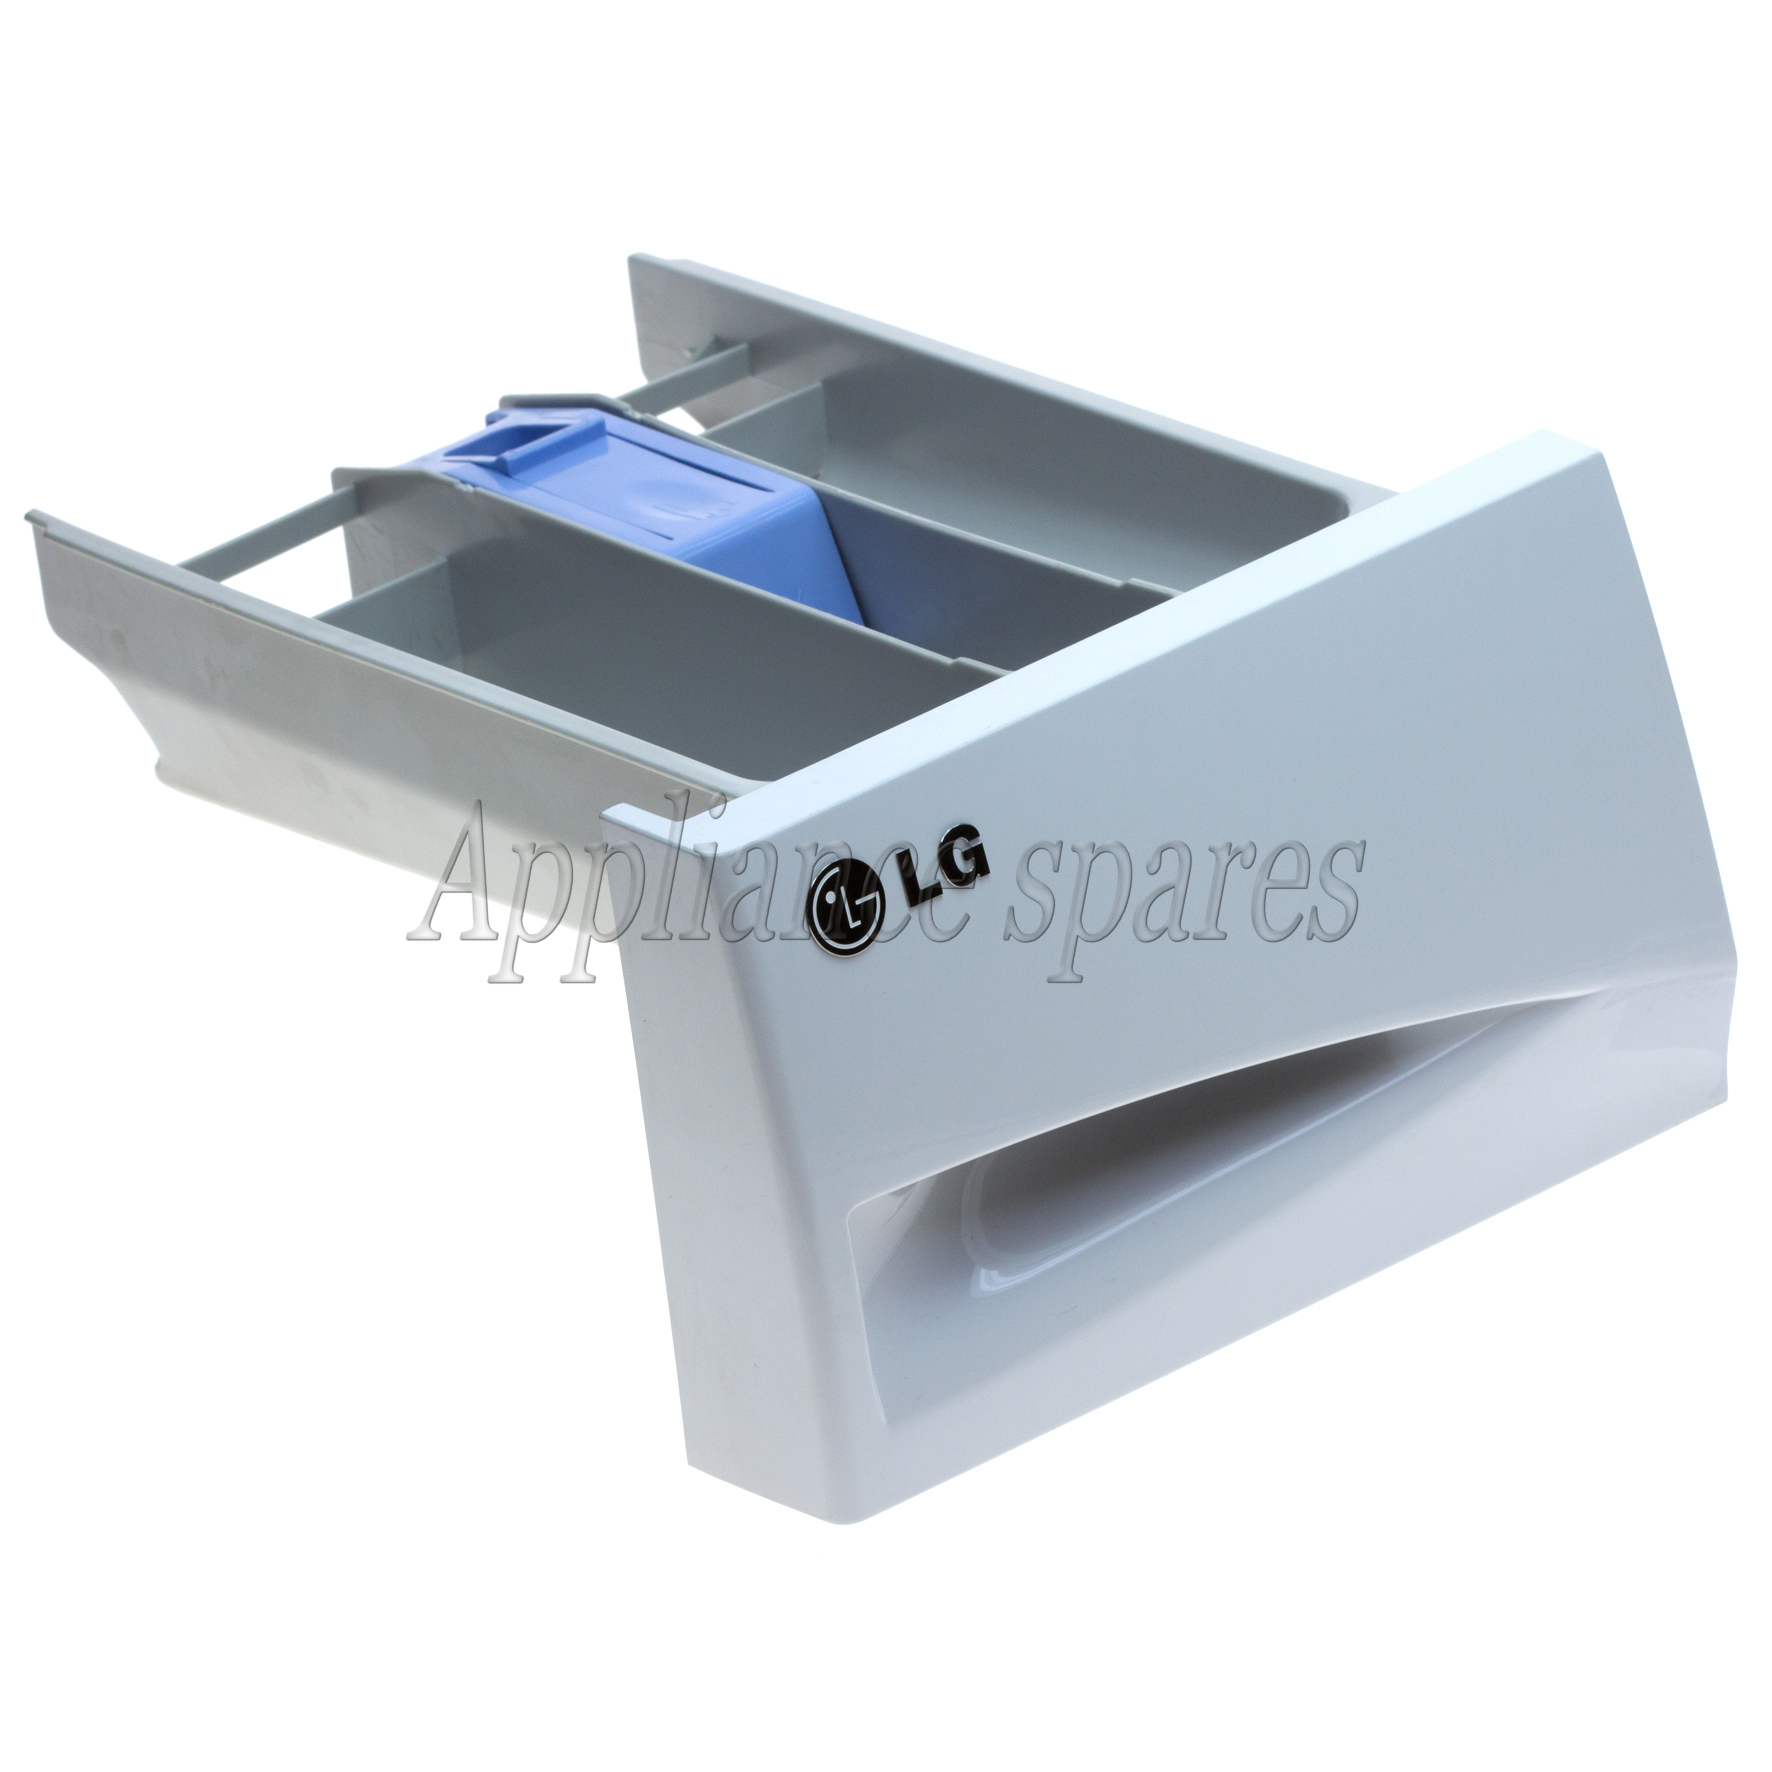 Lg Front Loader Washing Machine Soap Box Drawer Lategan